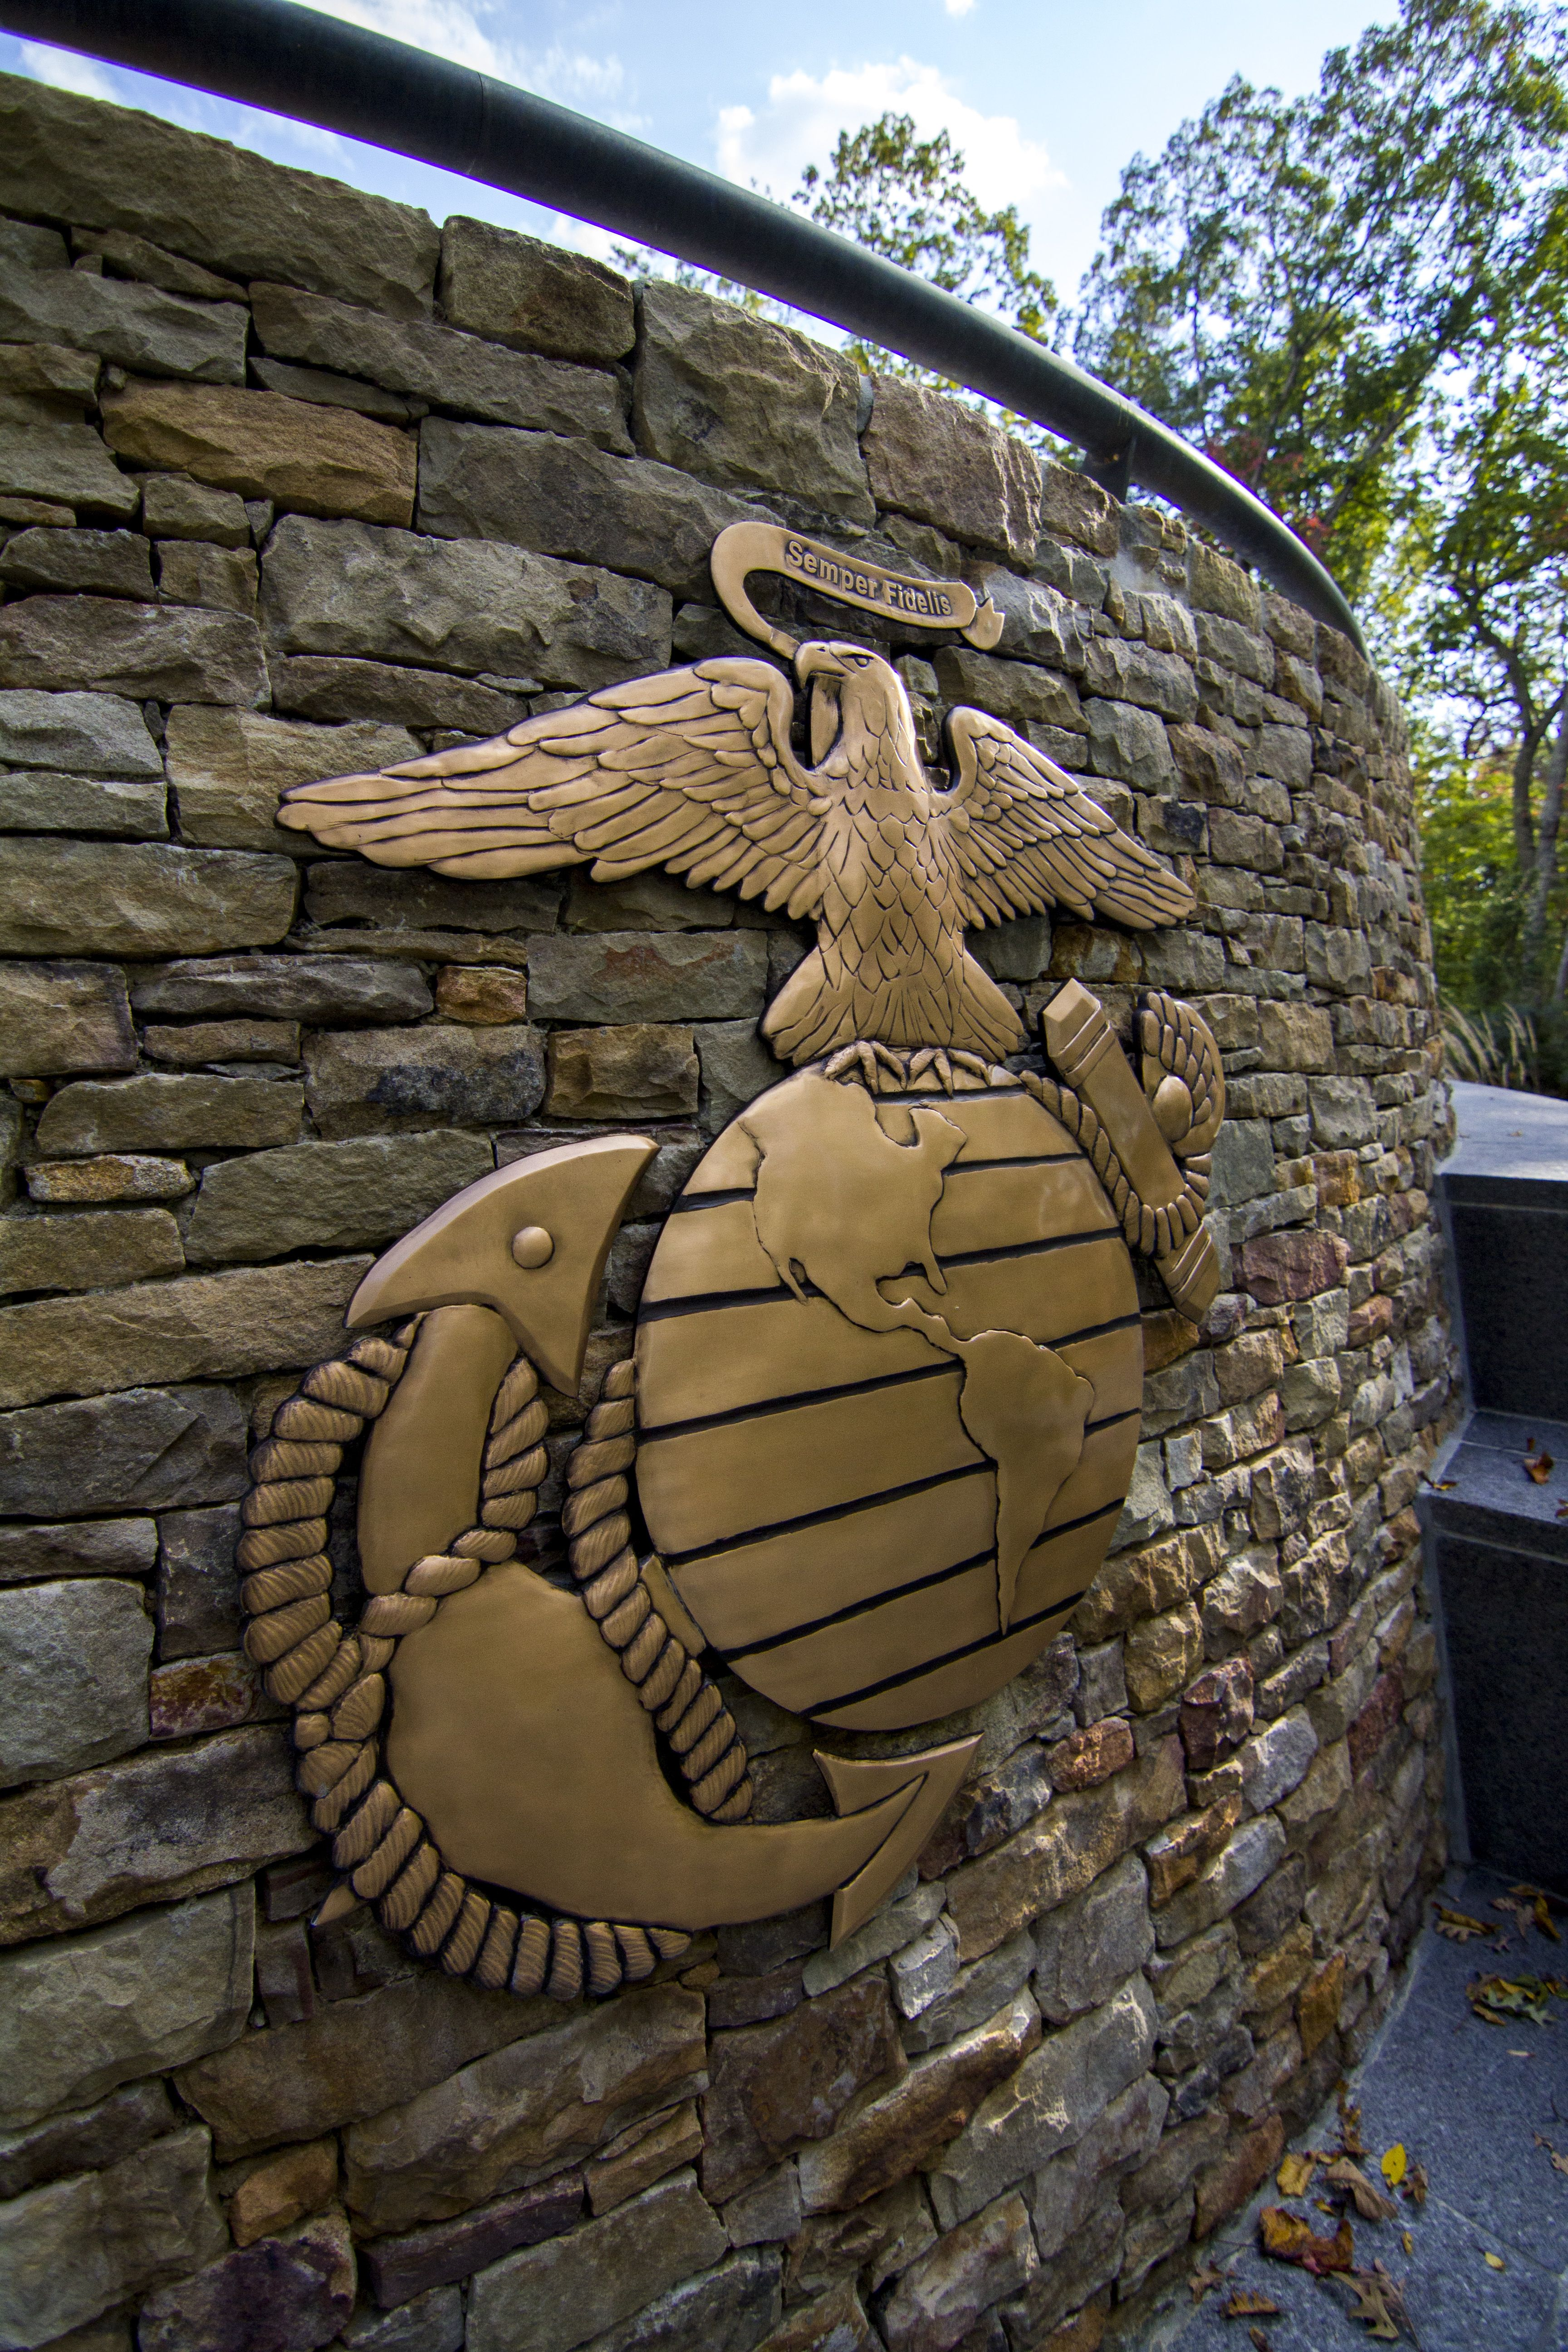 Large Stone Wall Ark : large, stone, Aluminum, Plaques, A.R.K., Ramos, Offers, Quality,, Value, Customer, Service, Signage,, Wal…, Custom, Plaque,, Large, Metal, Letters,